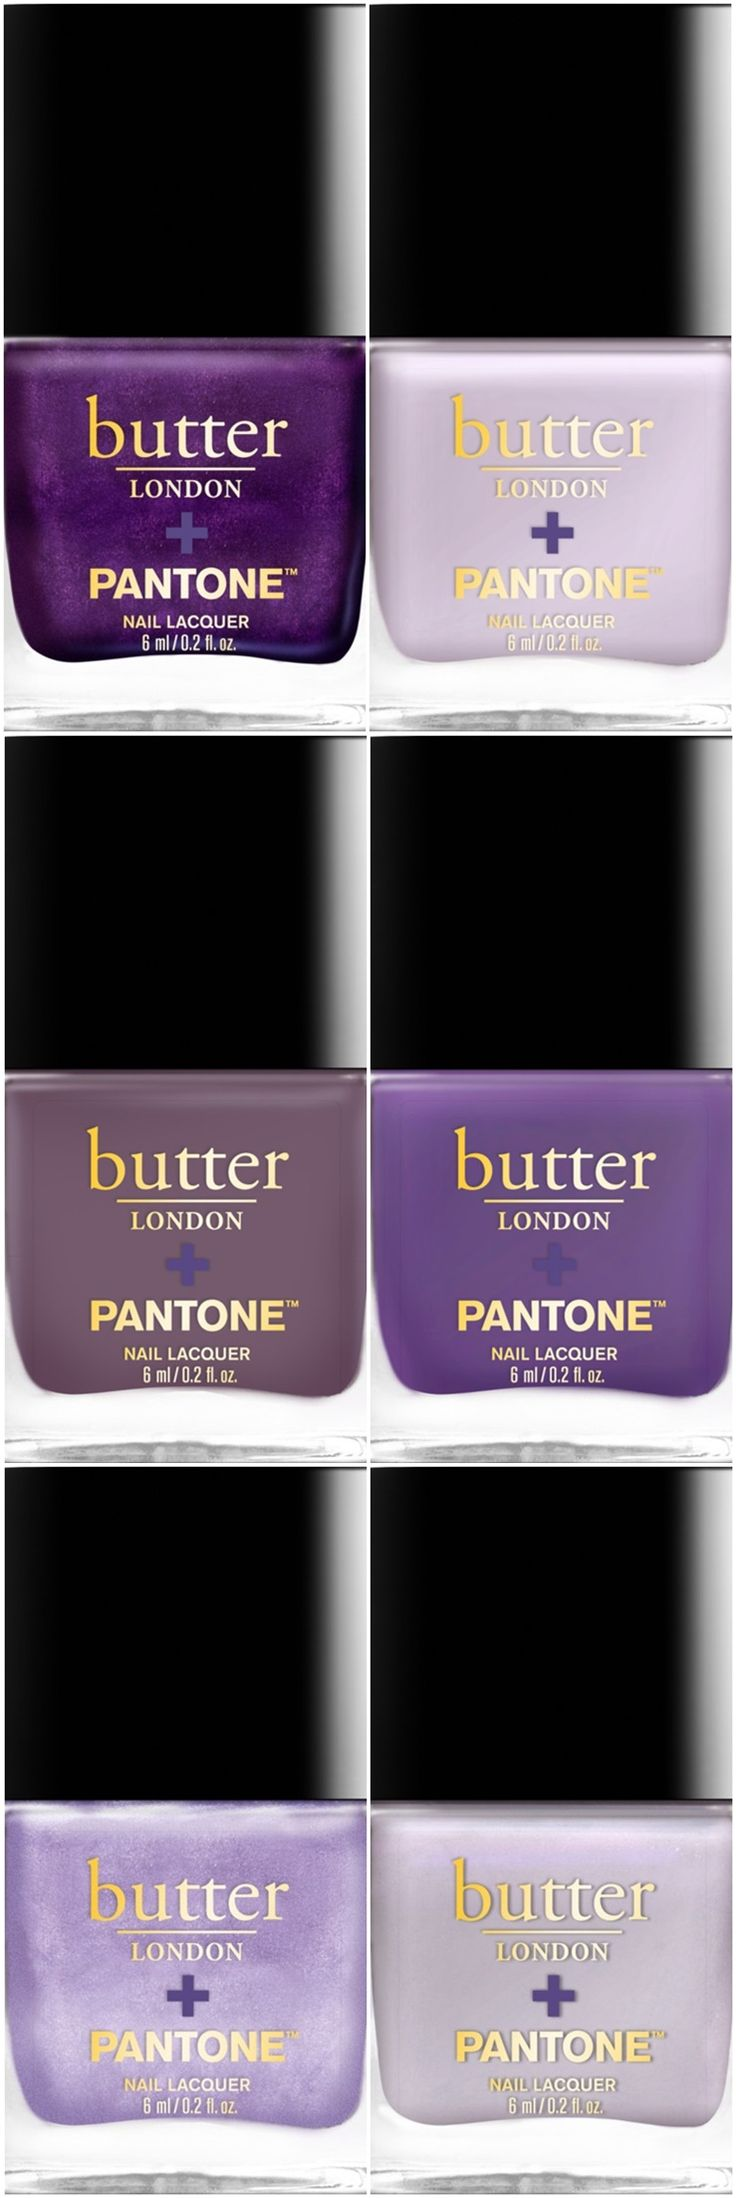 Butter London Pantone 2018 Color of the Year Collection Launches at Ulta